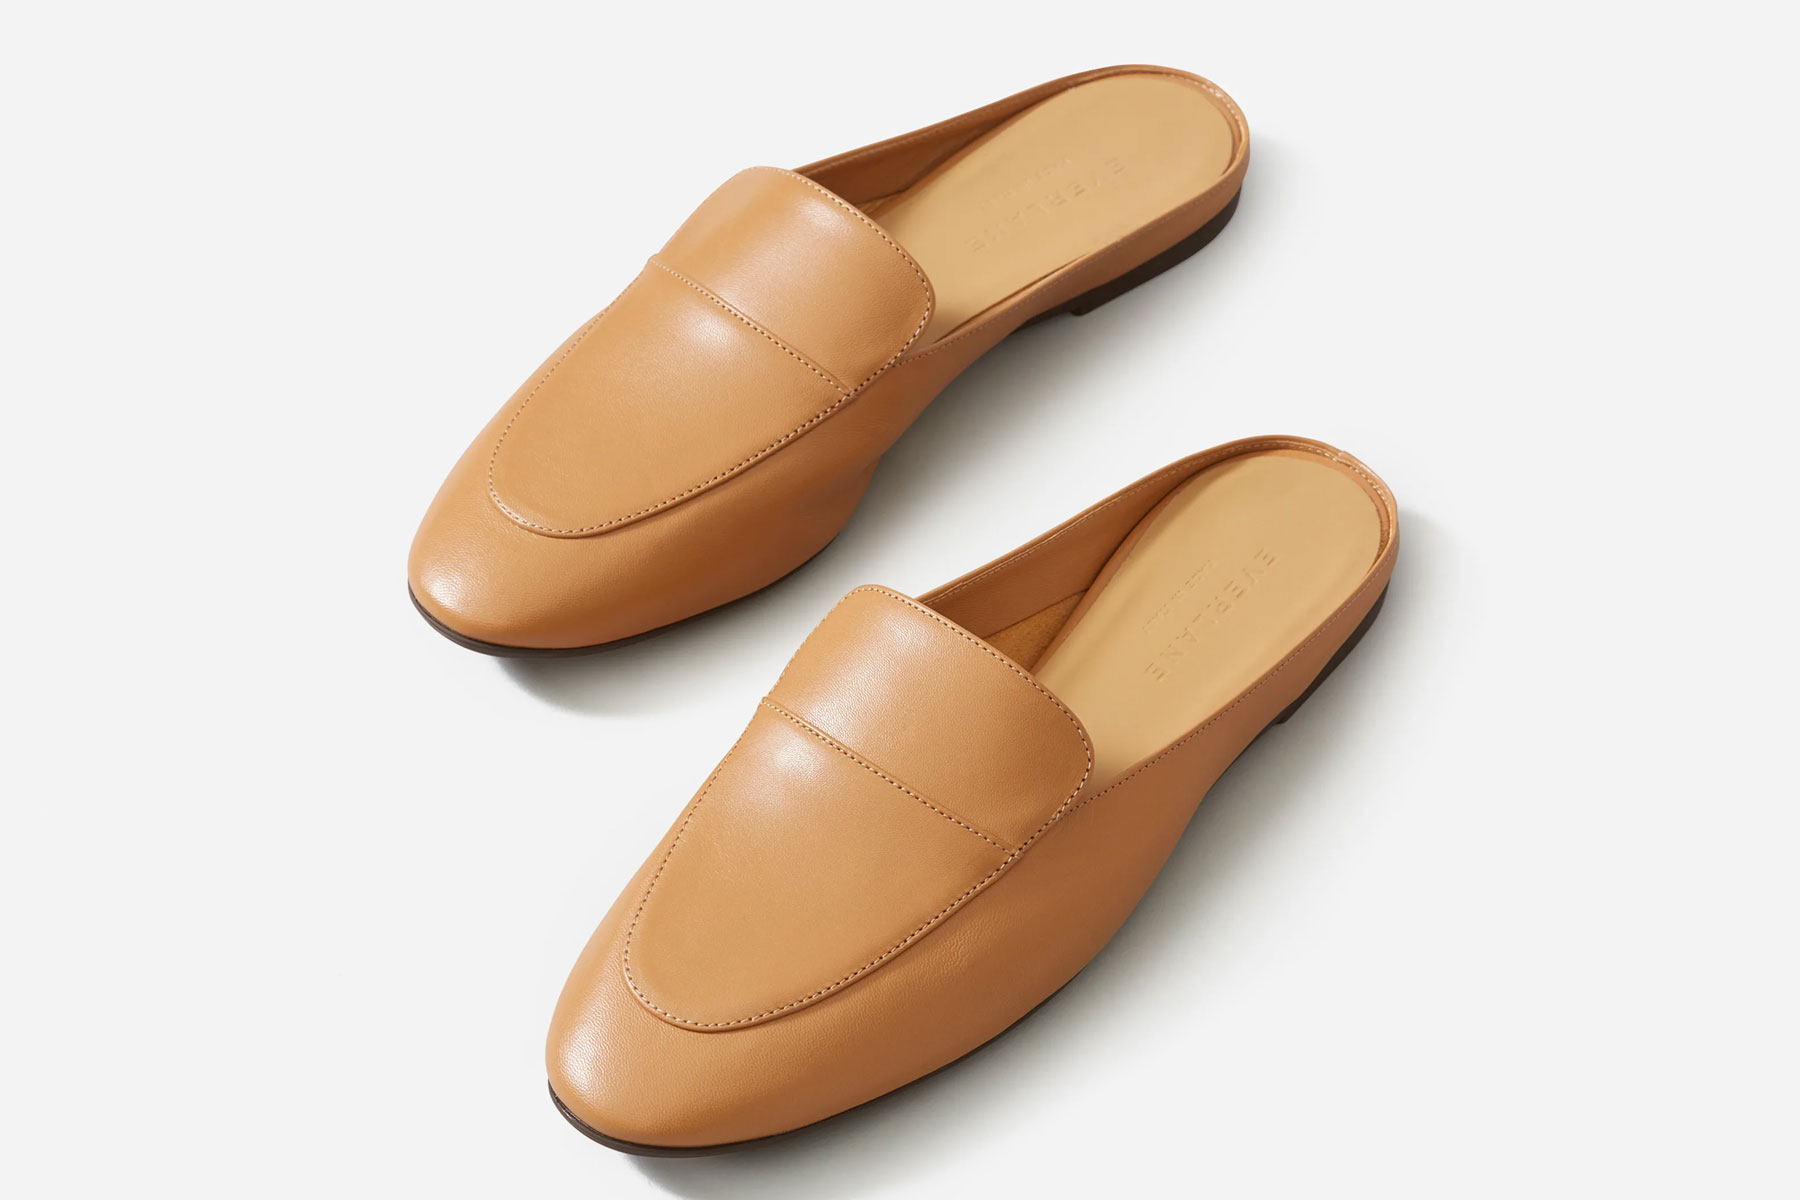 Tan leather loafer mules